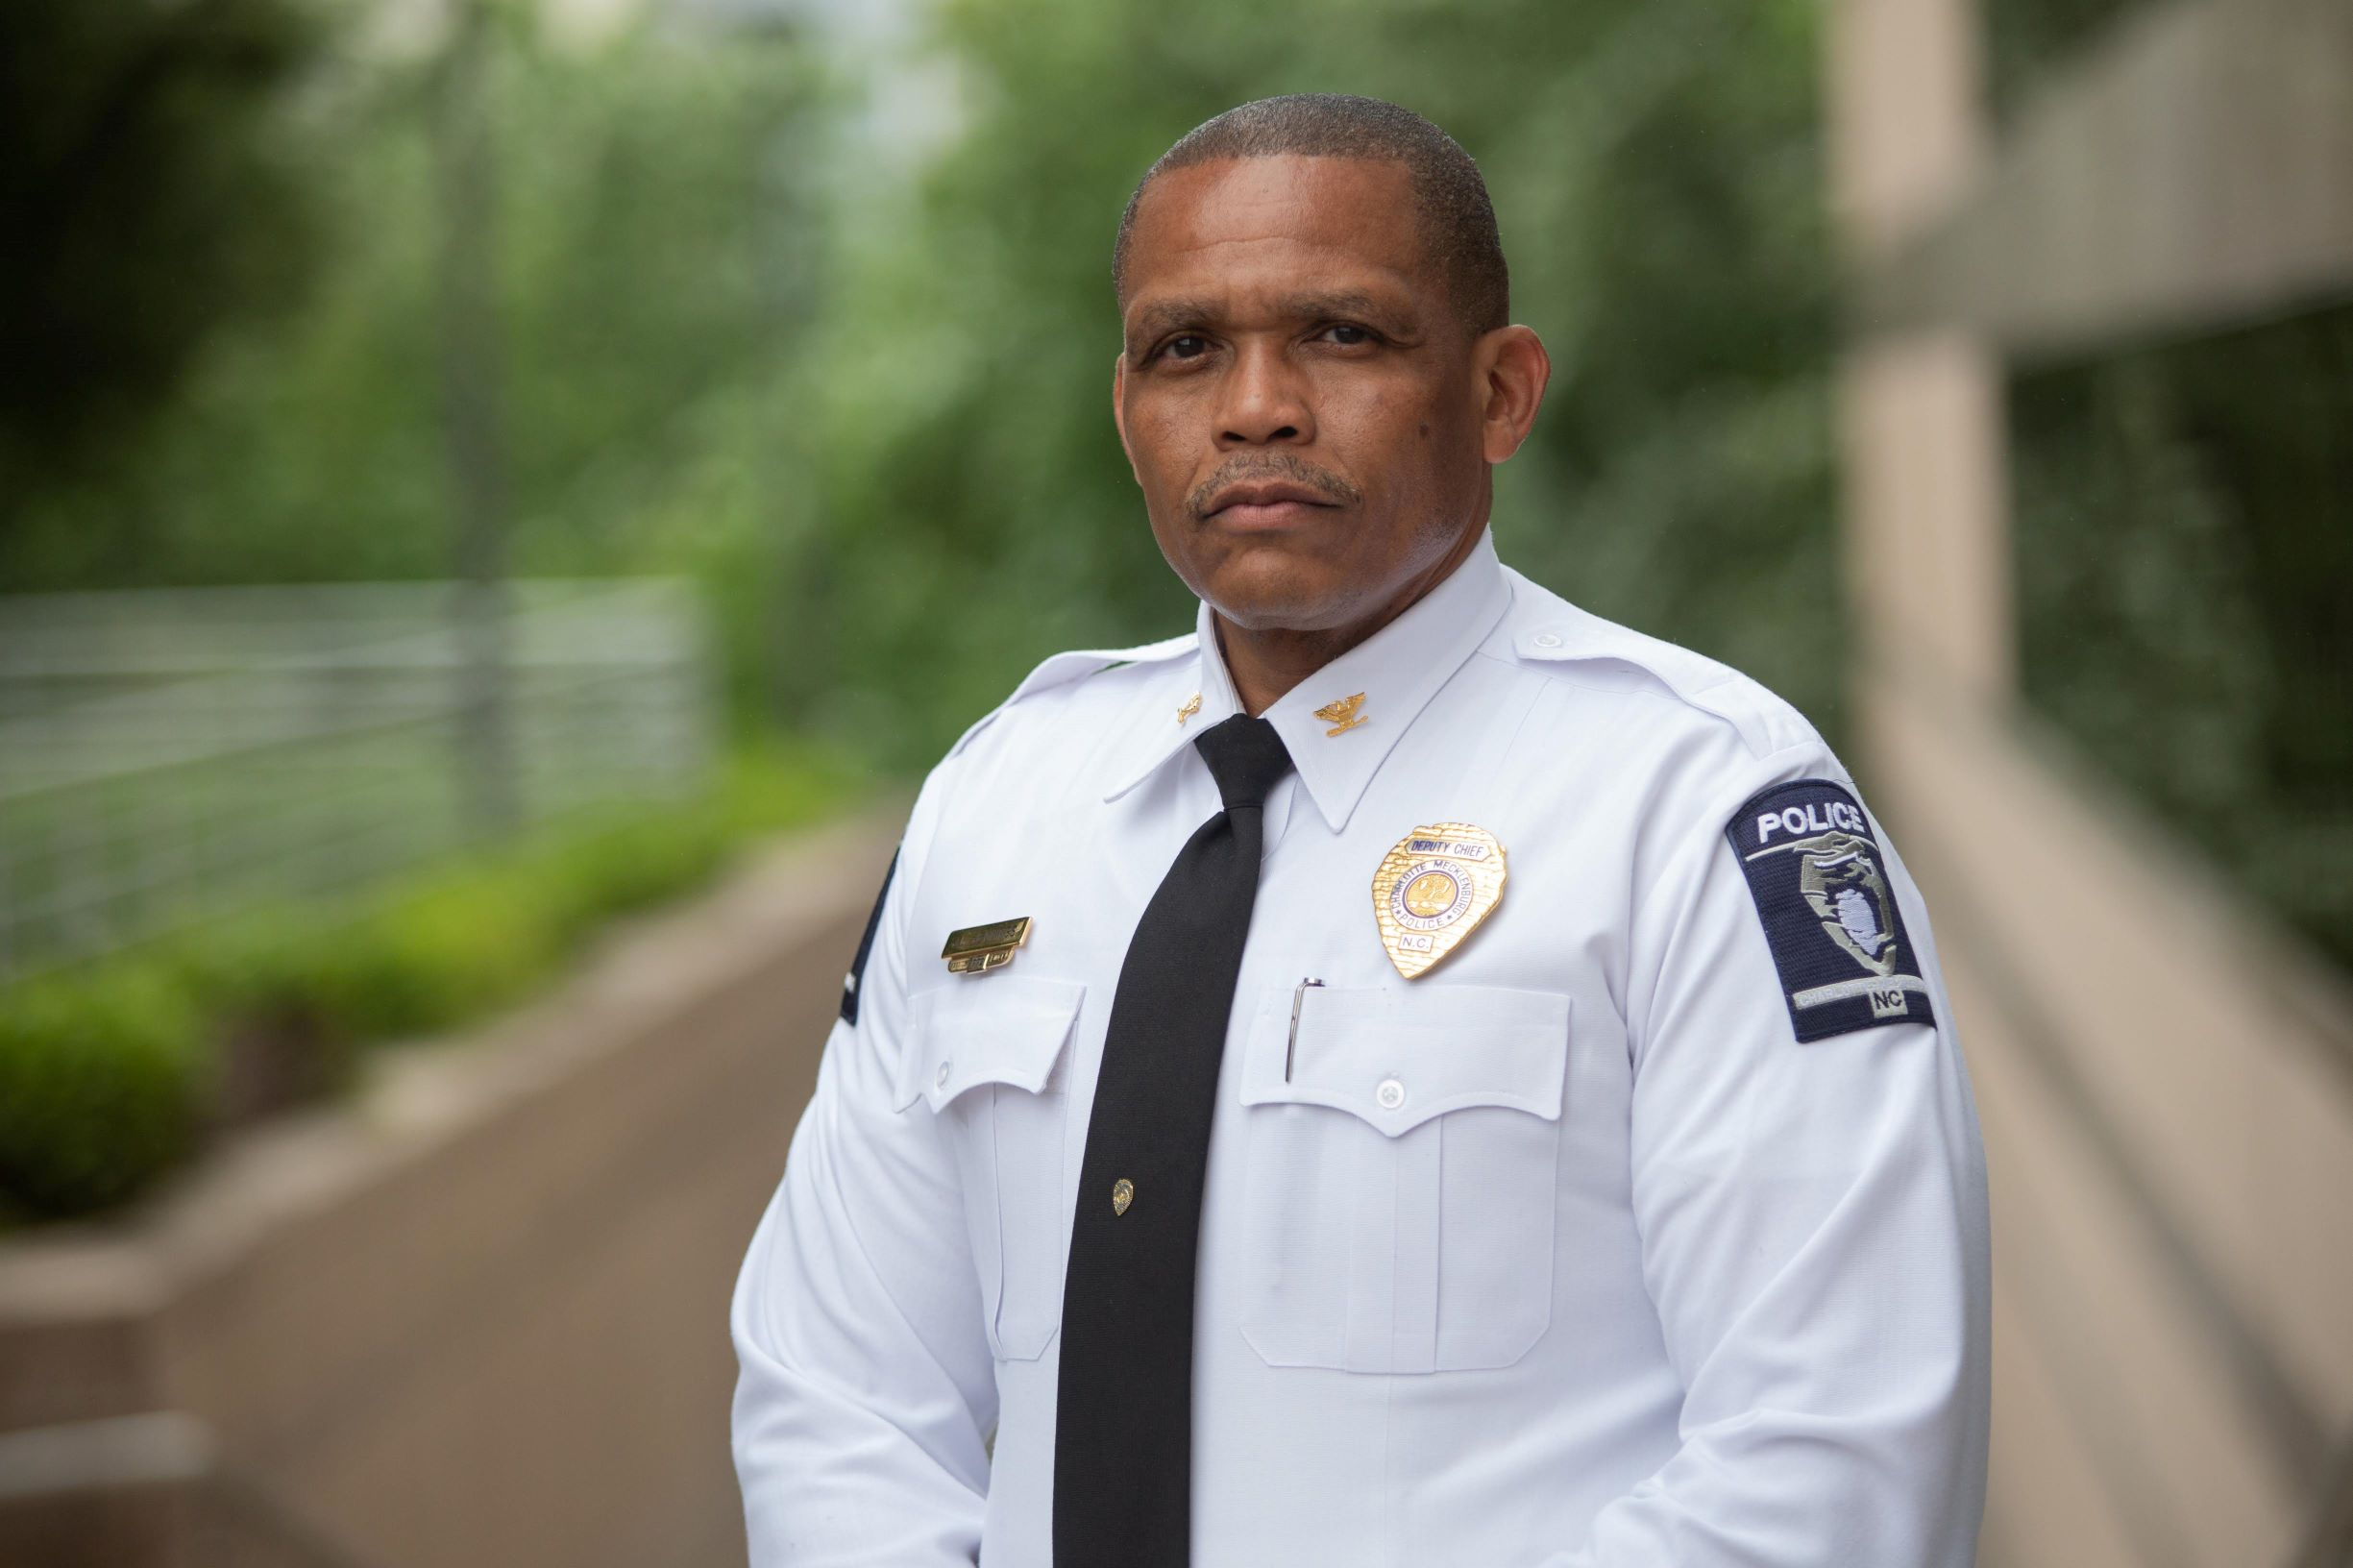 CMPD-Johnny-Jennings-named-police-chief-2020